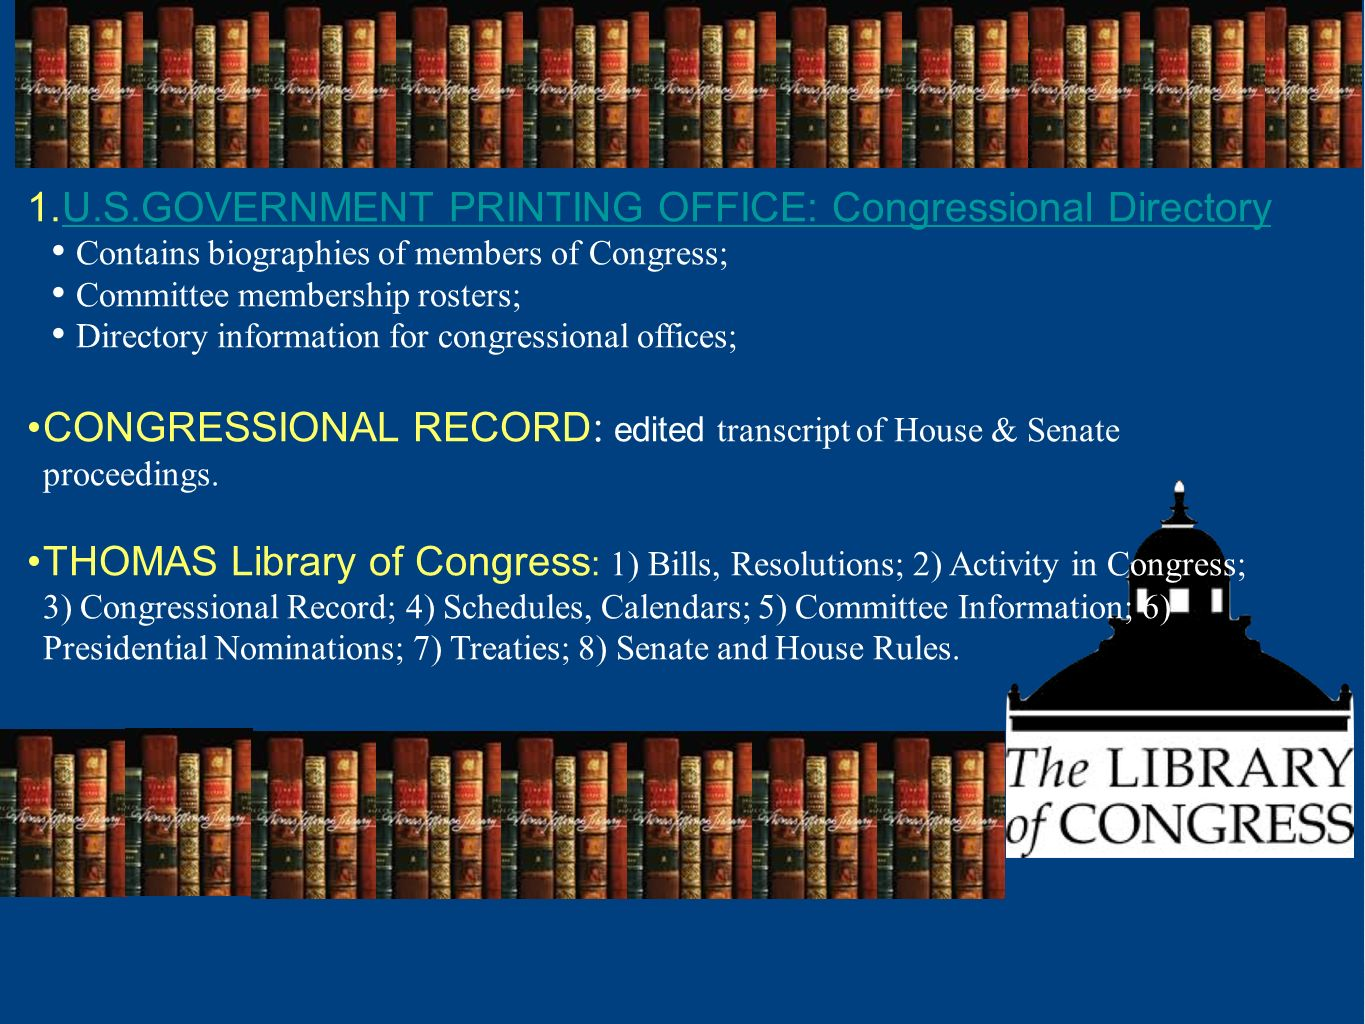 U.S.GOVERNMENT PRINTING OFFICE: Congressional Directory